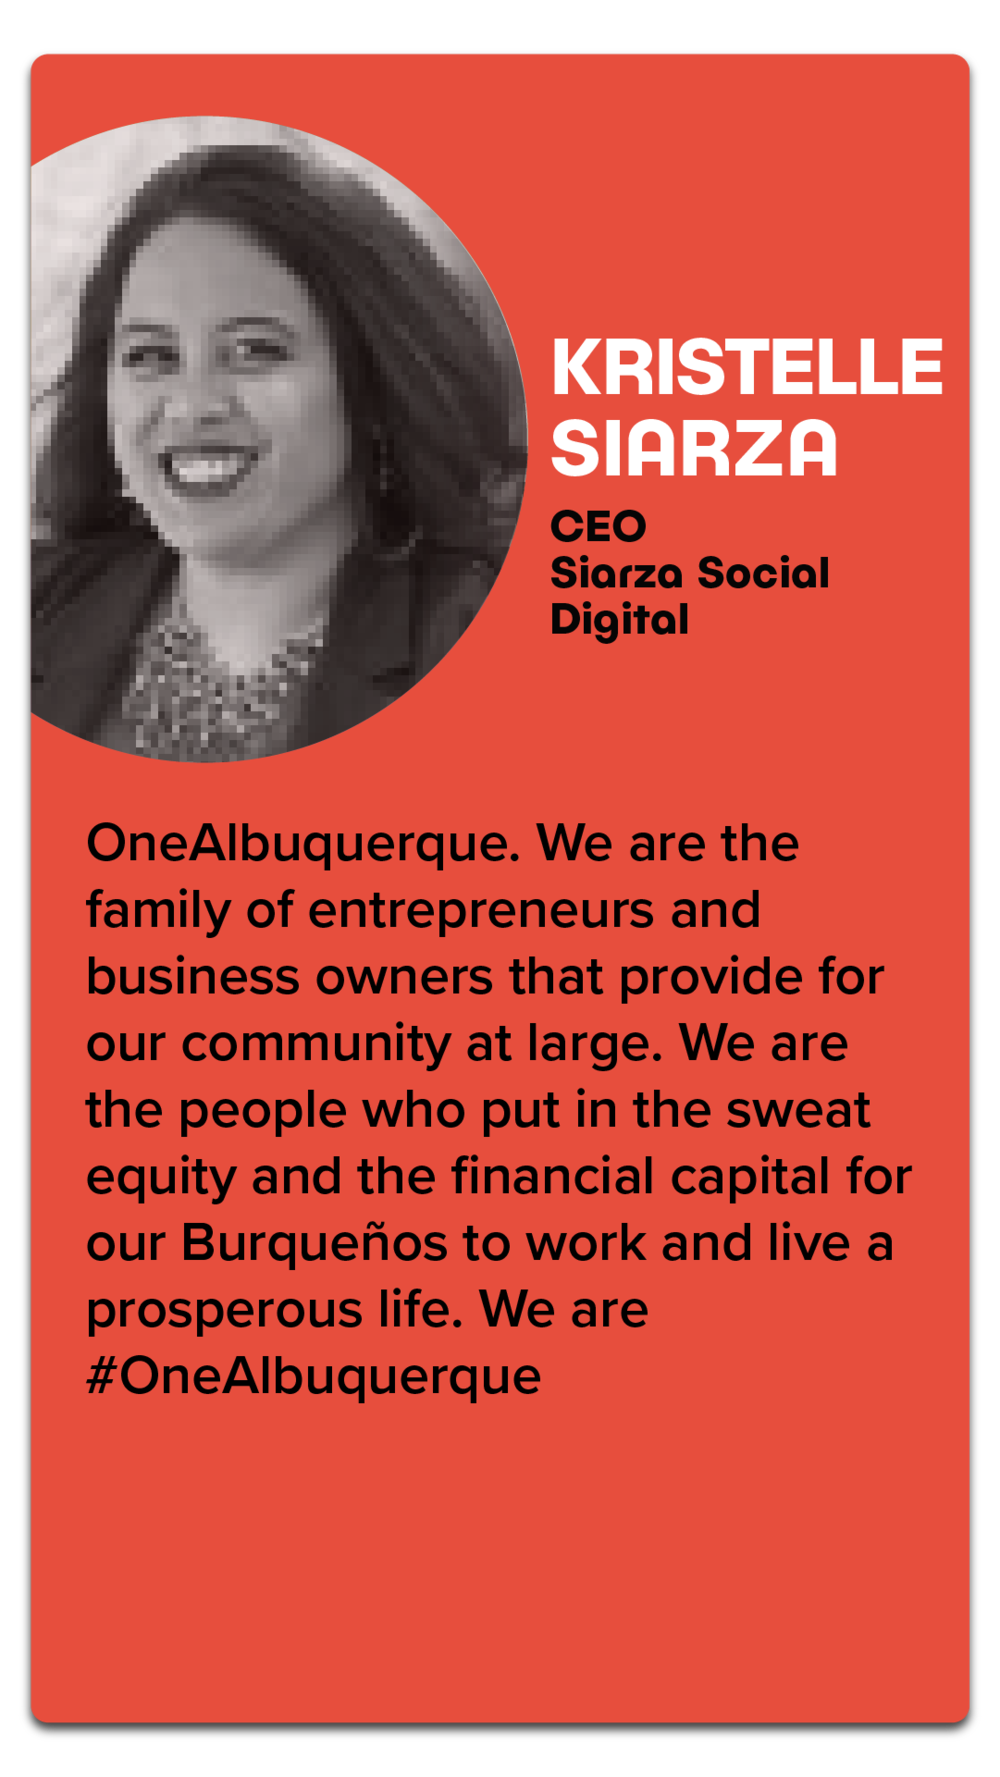 "Kristelle Siarza, CEO, Siarza Social Digital  ""OneAlbuquerque. We are the family or entrepreneur and business owners that provide for our community at large. We are the people who put in the sweat equity and the financial capital for our Burqueños to work and live a prosperous life. We are #OneAlbuquerque."""